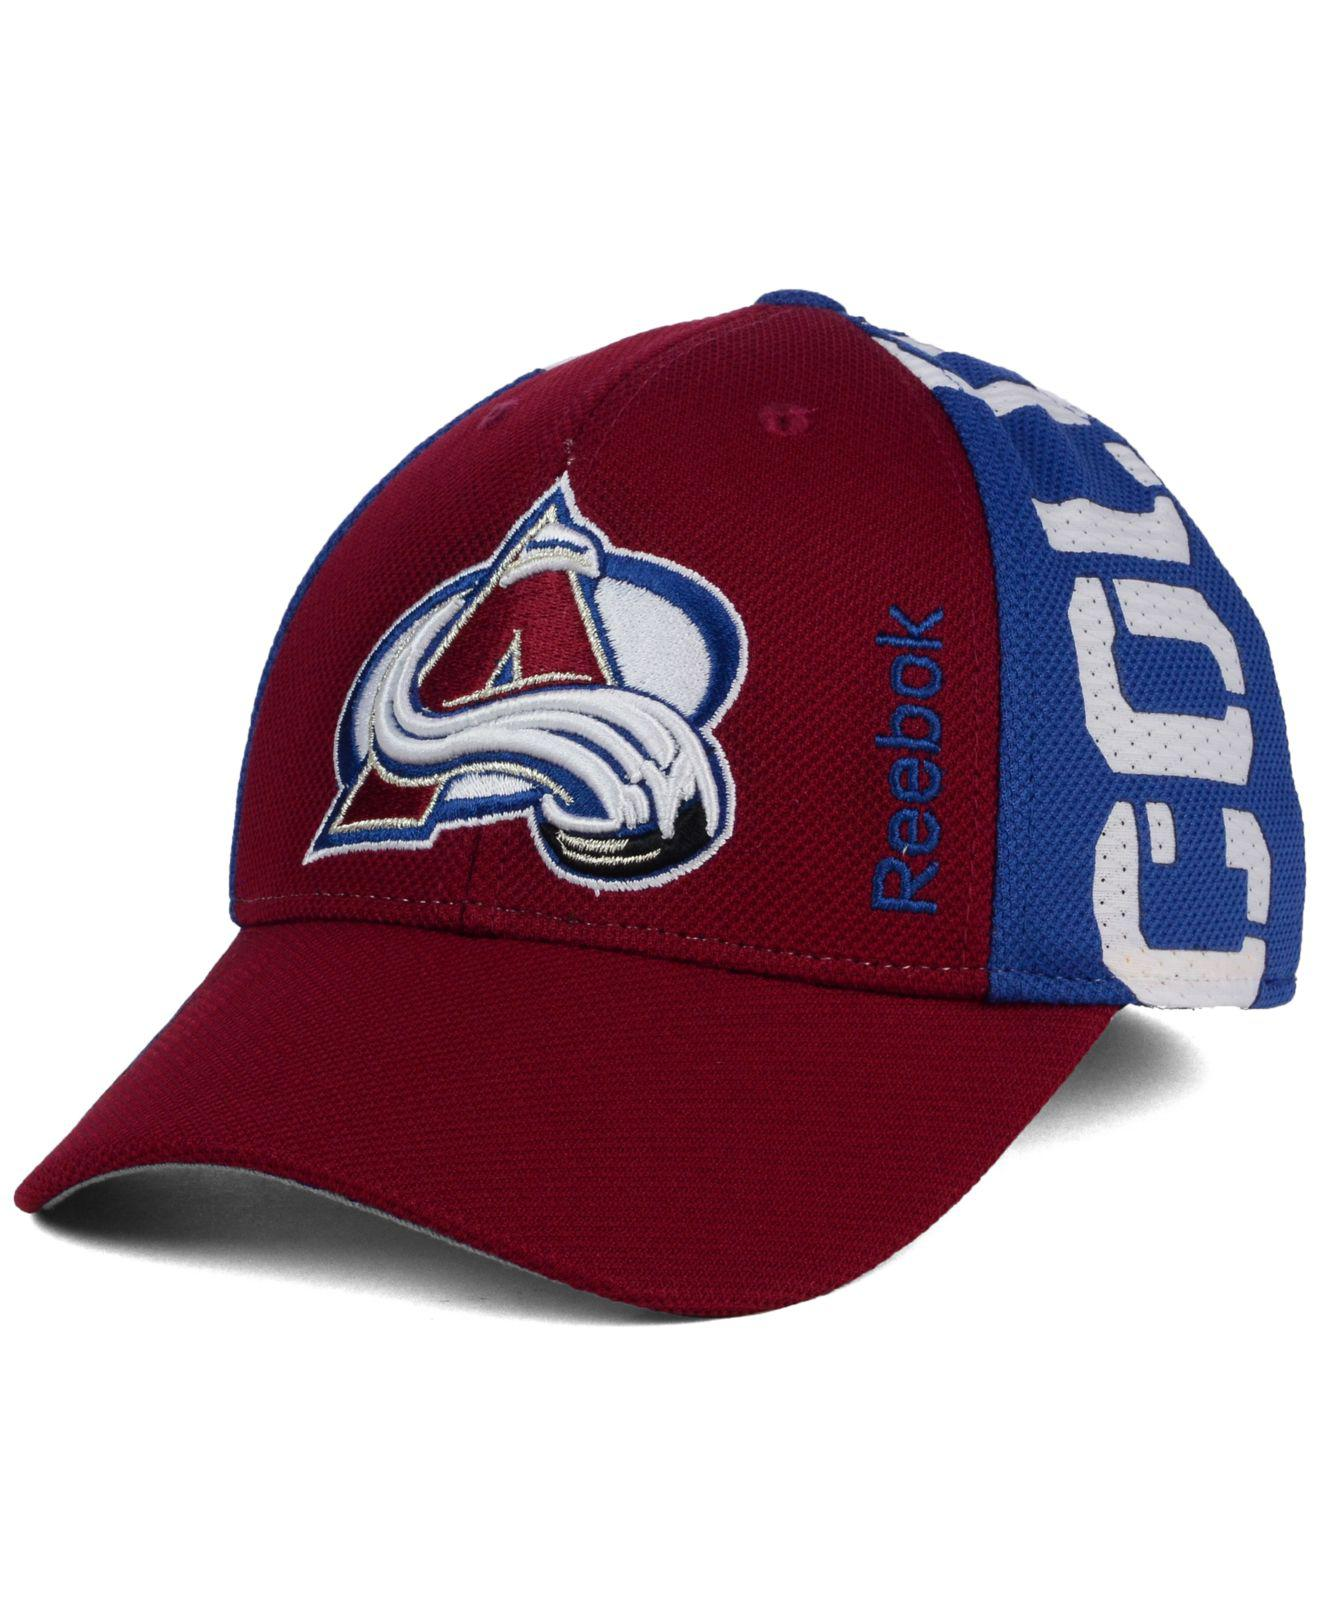 762289394aa ... canada lyst reebok colorado avalanche 2016 nhl draft flex cap in red  for men d7289 e7a14